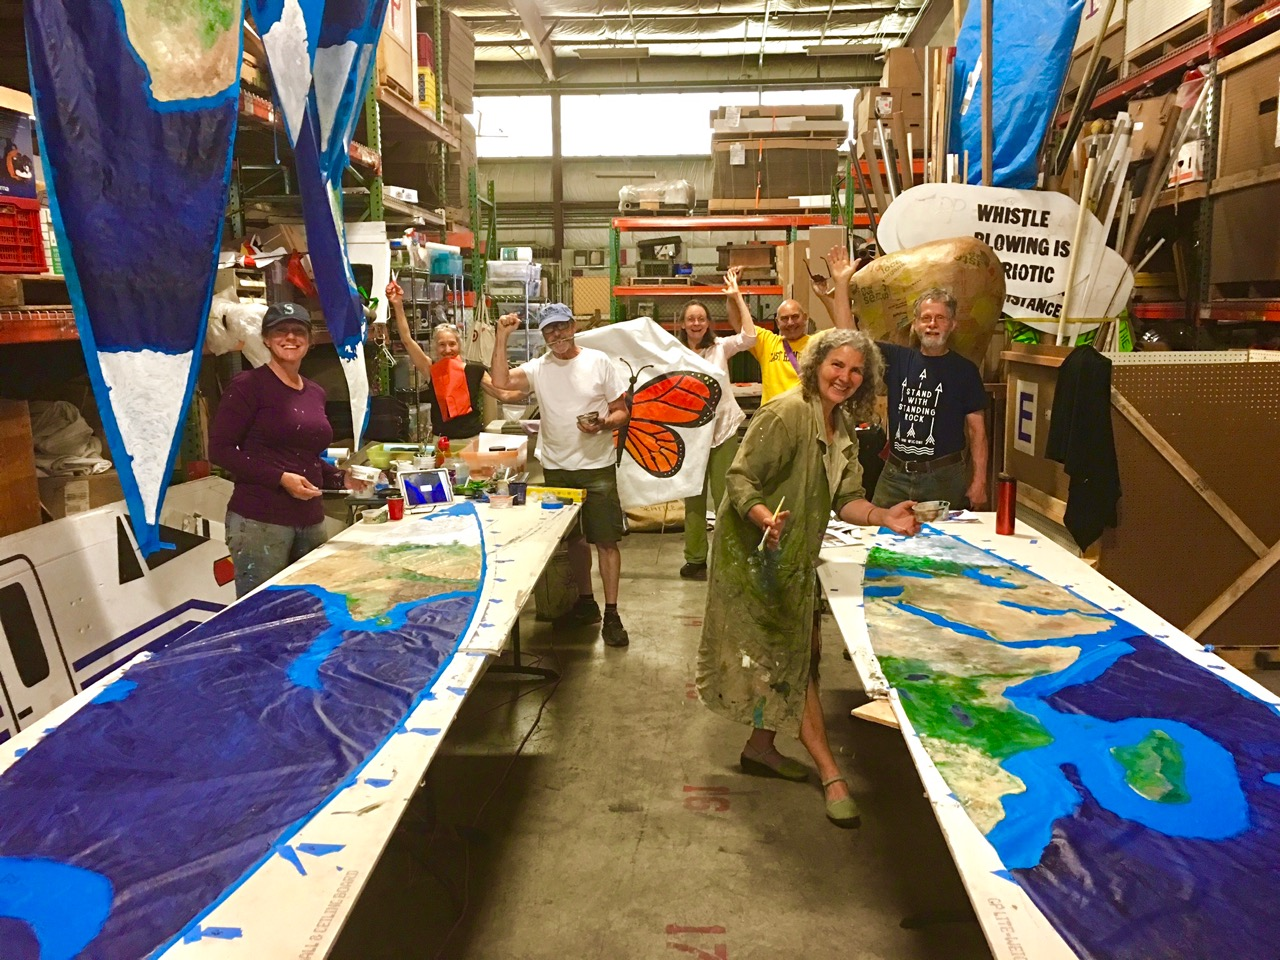 Small_Group_photo_in_the_warehouse_painting_the_globe_at_a_Wednesday_Volunteer_Drop-In_Art_build.jpg